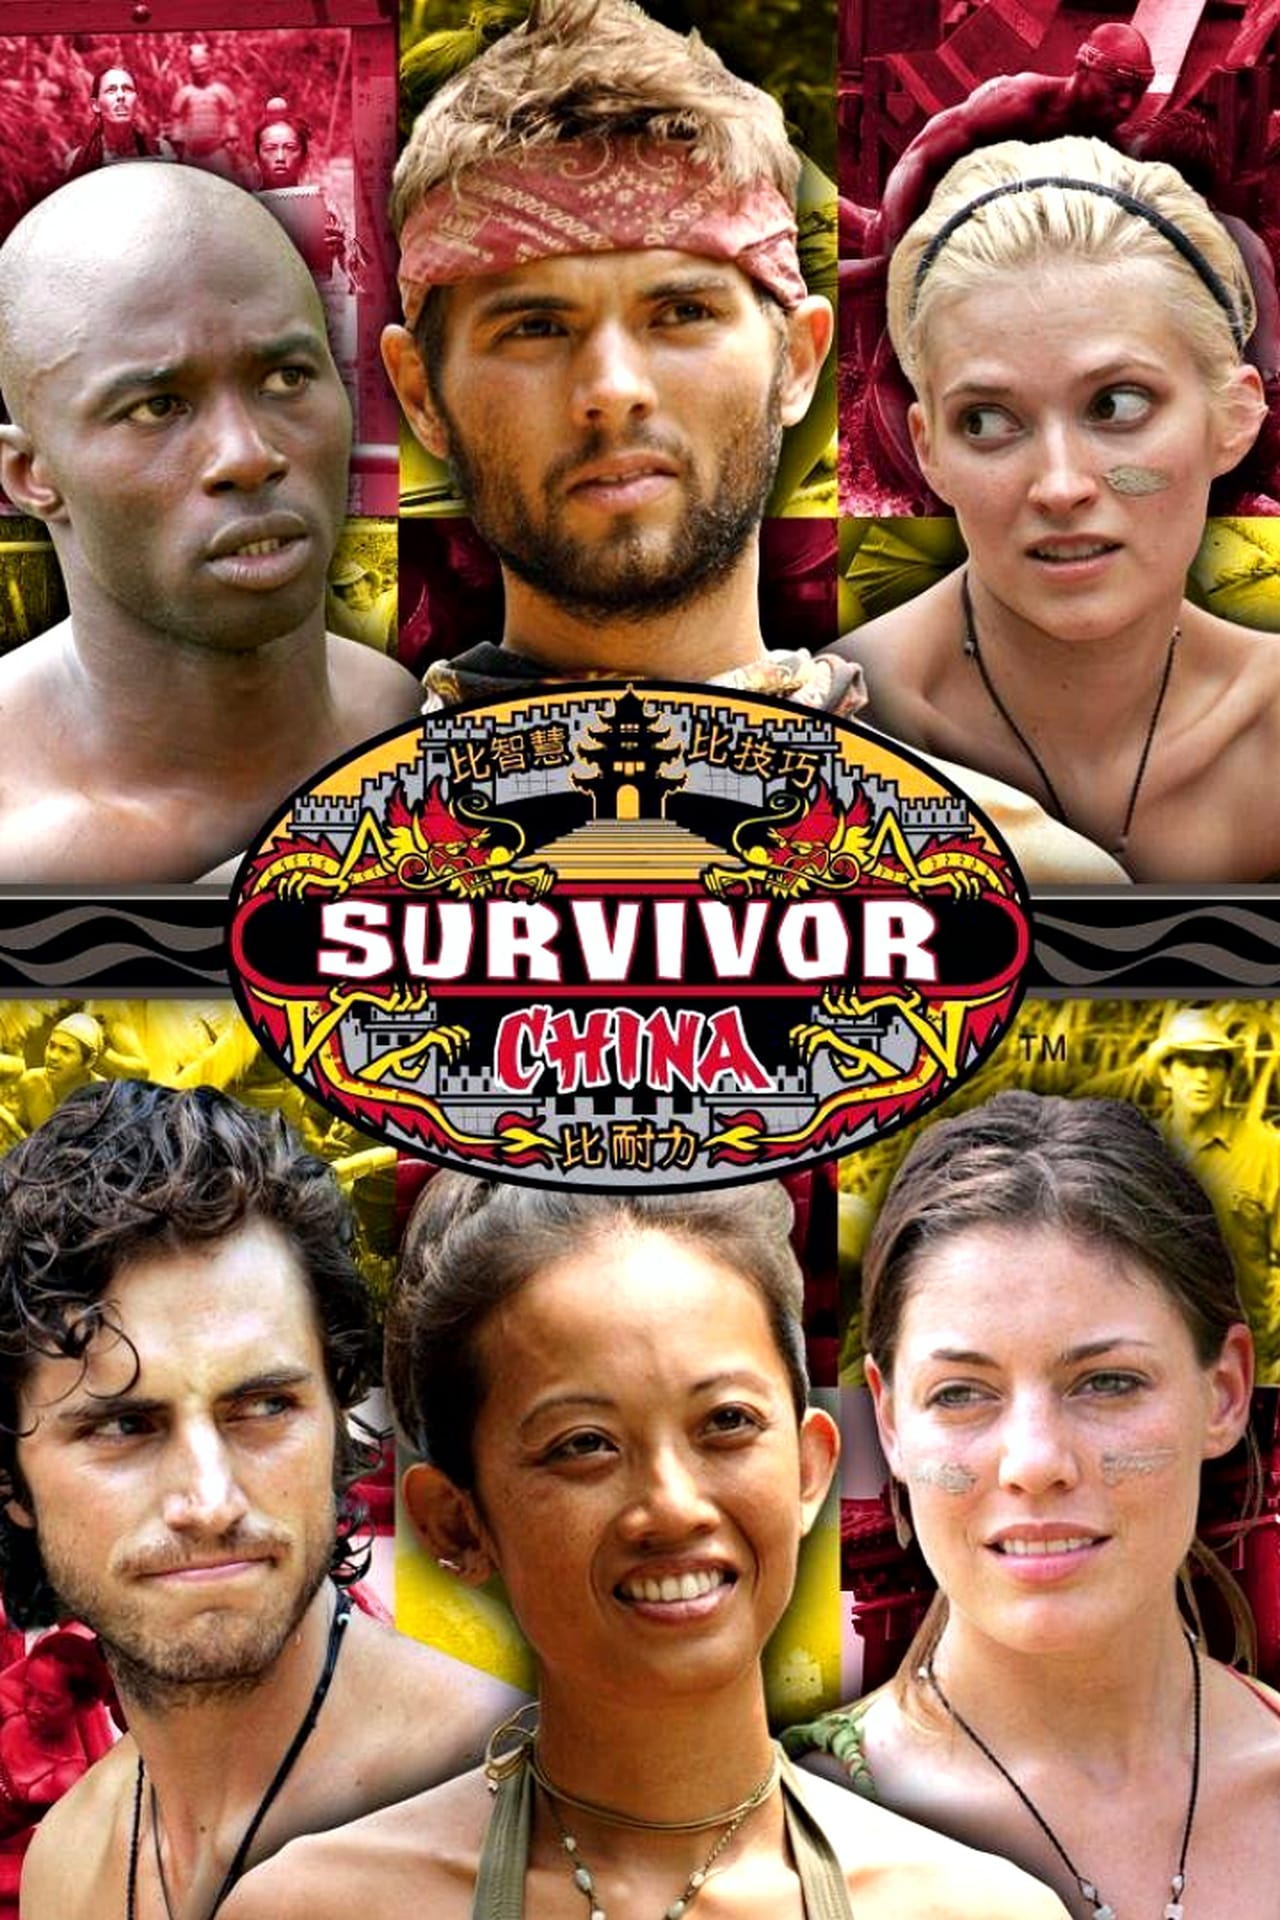 Survivor Season 15 (2007) putlockers cafe